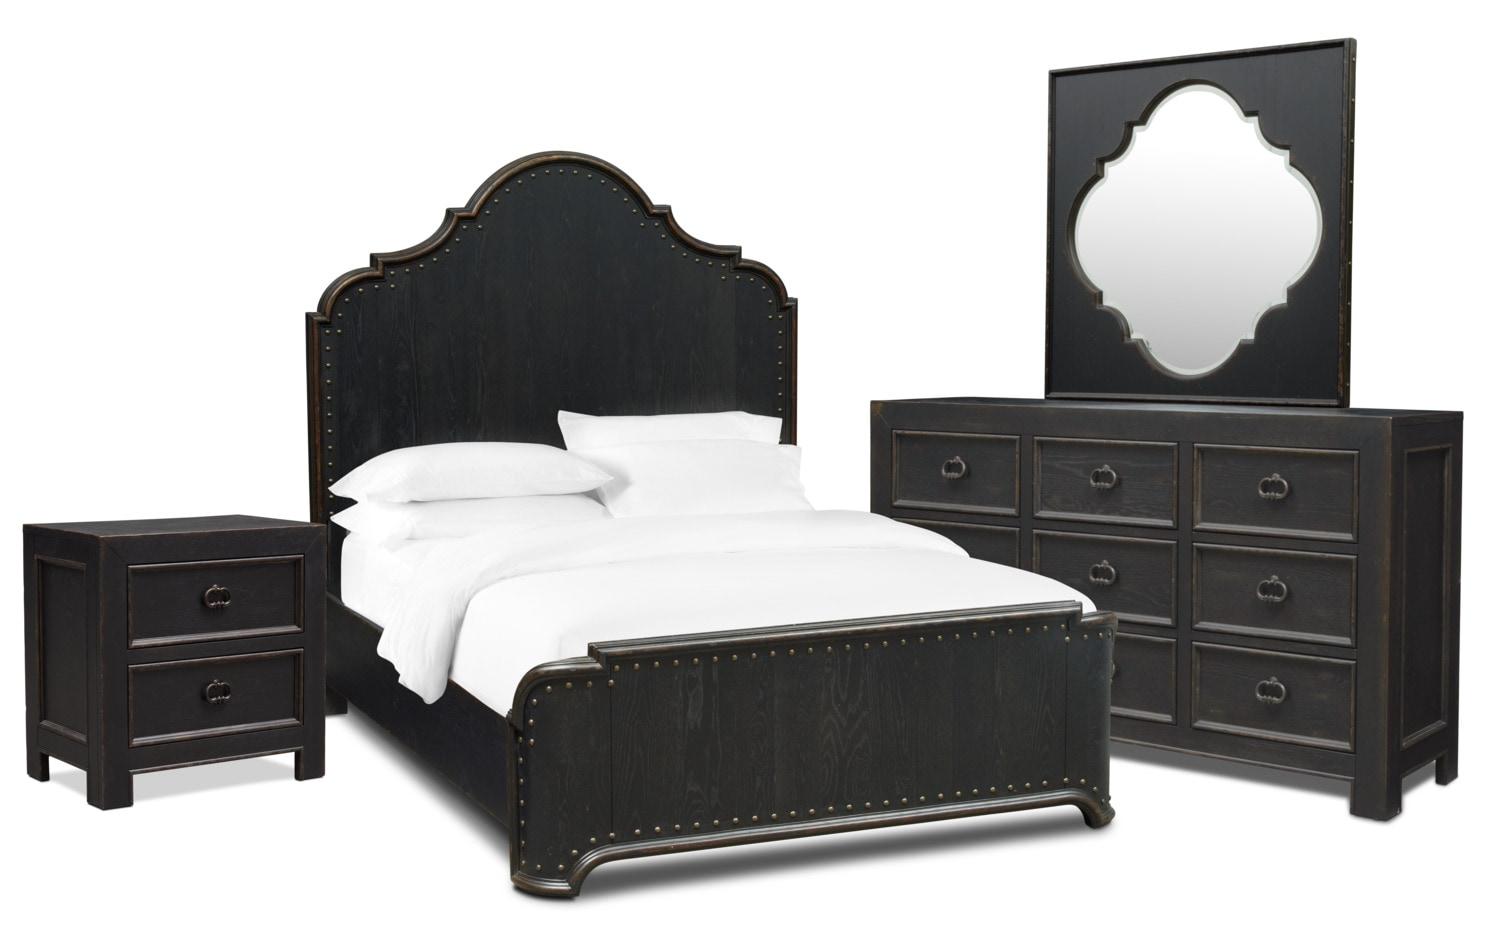 Lennon 6-Piece Bedroom Set with Nightstand, Dresser and Mirror